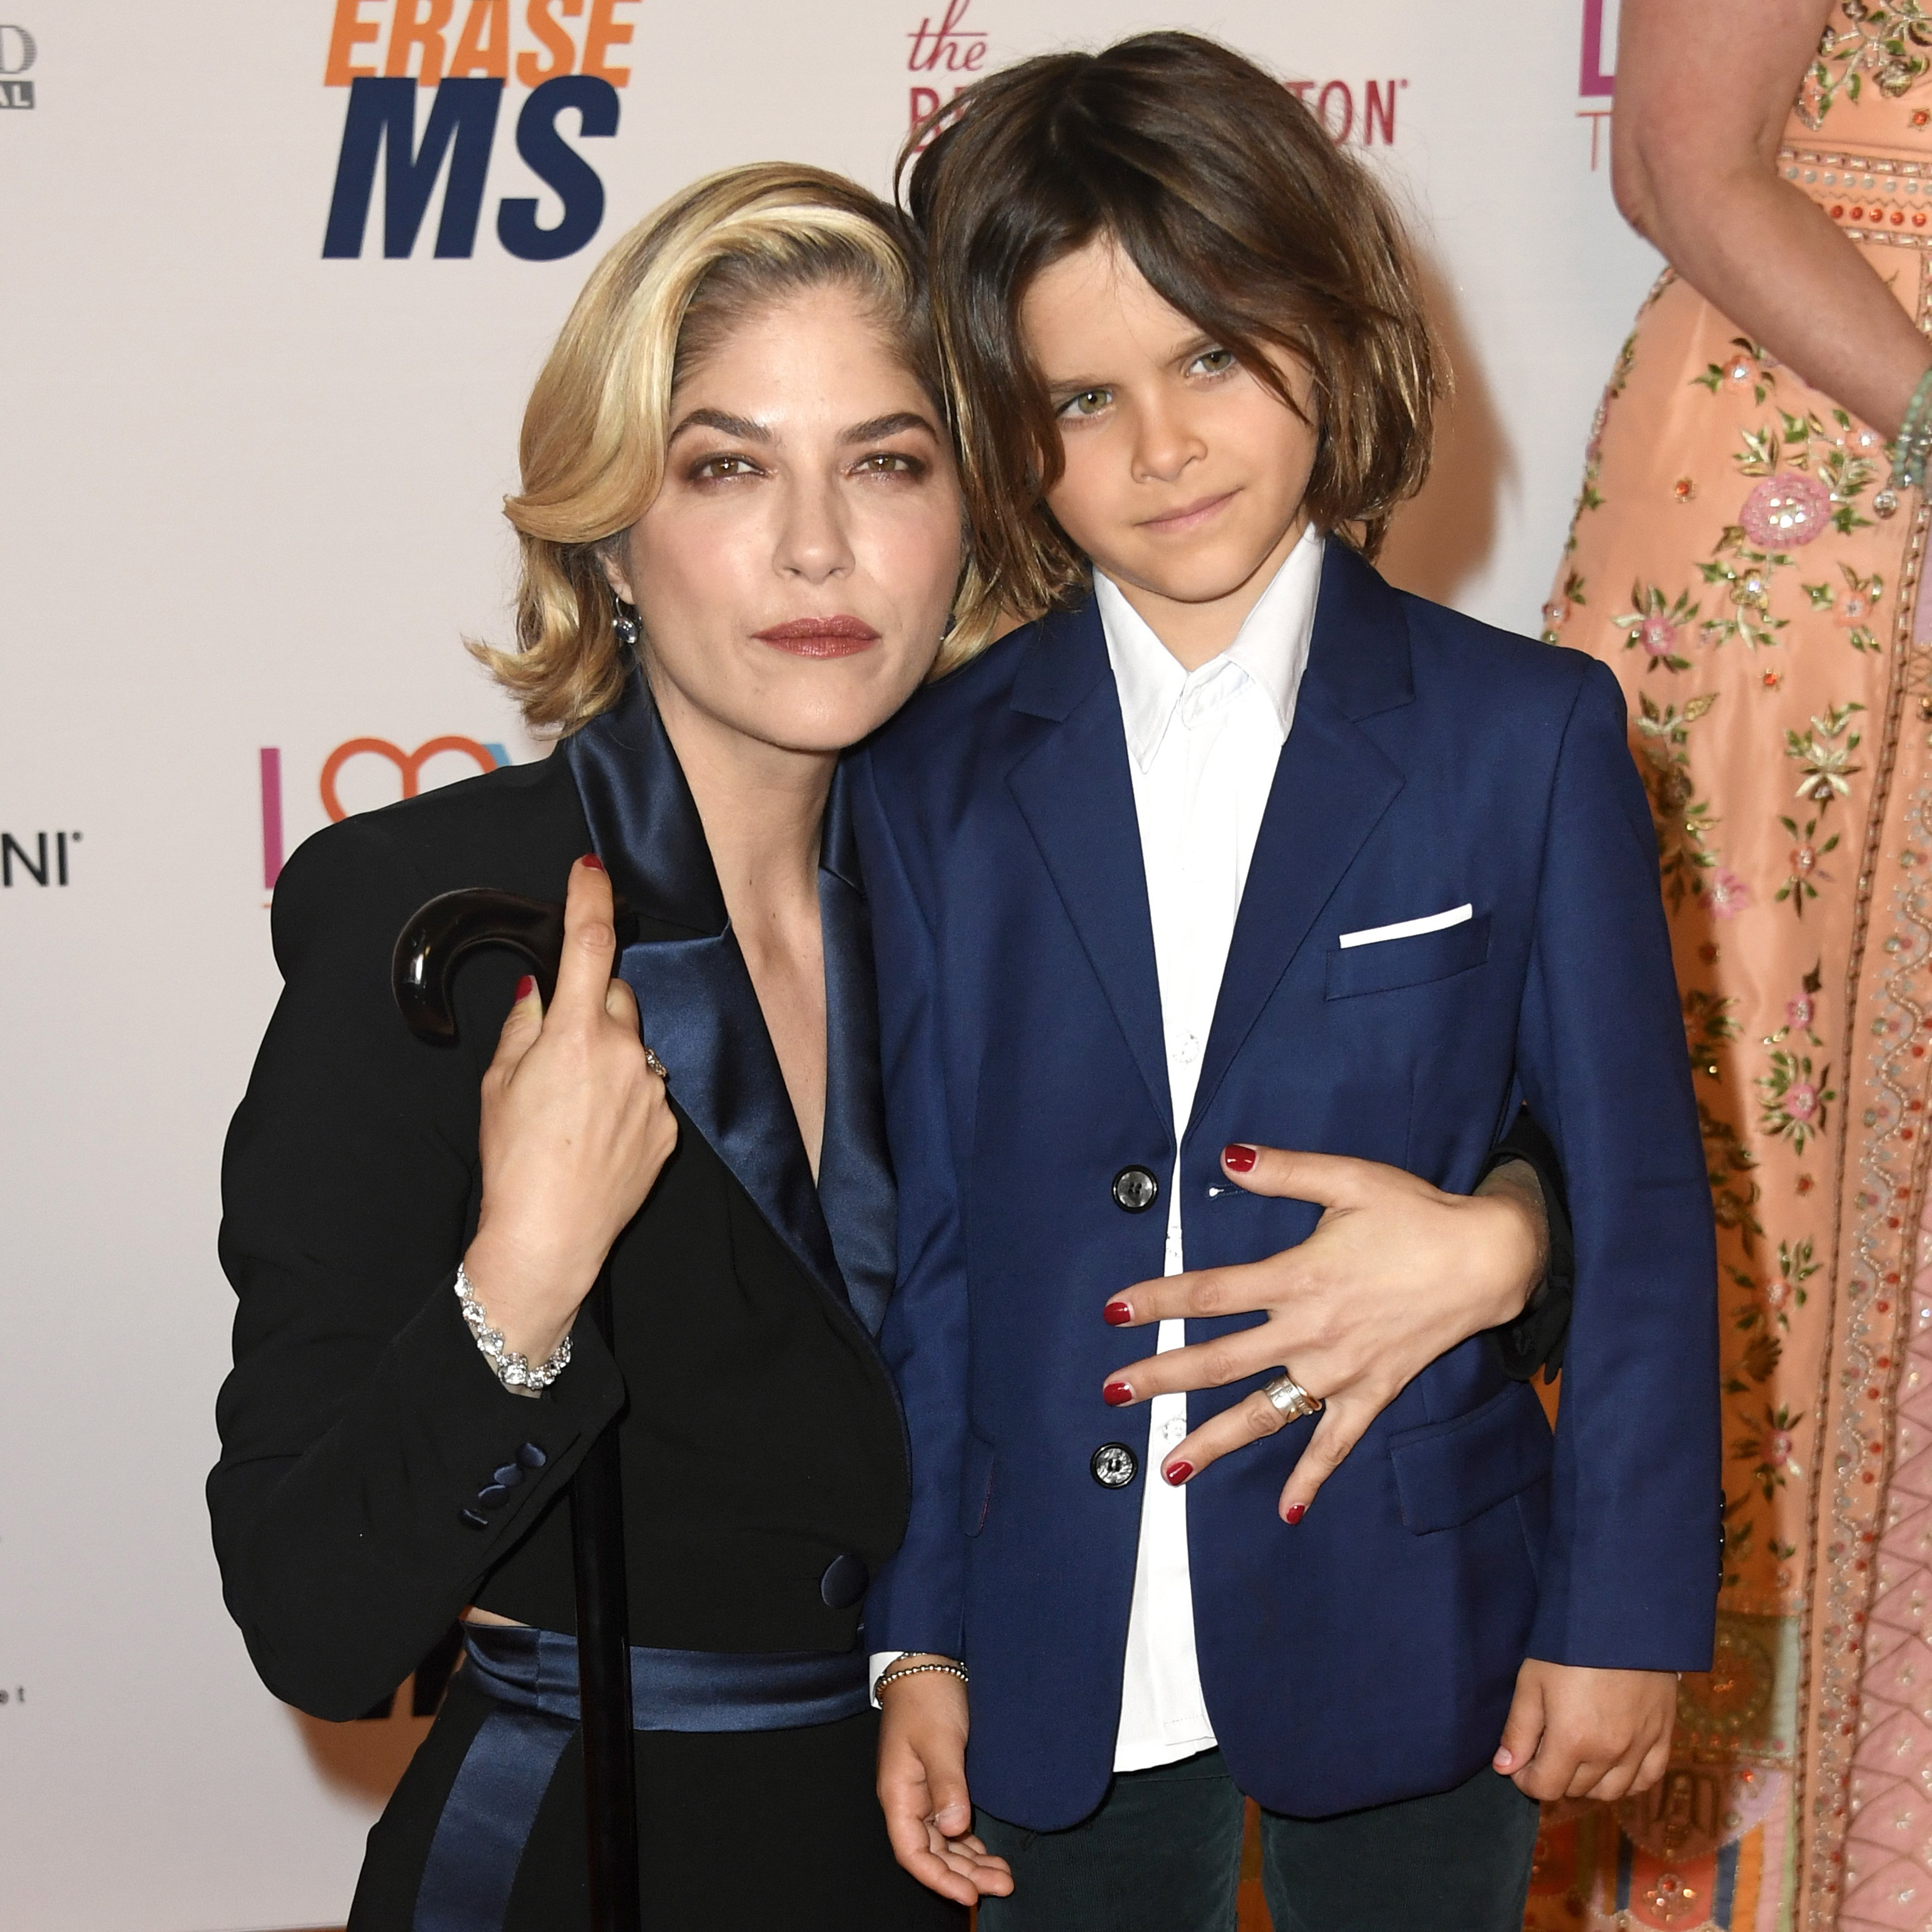 Honoree Selma Blair and Arthur Saint Bleick attend the 26th annual Race to Erase MS on May 10, 2019 in Beverly Hills, California.   Source: Getty Images